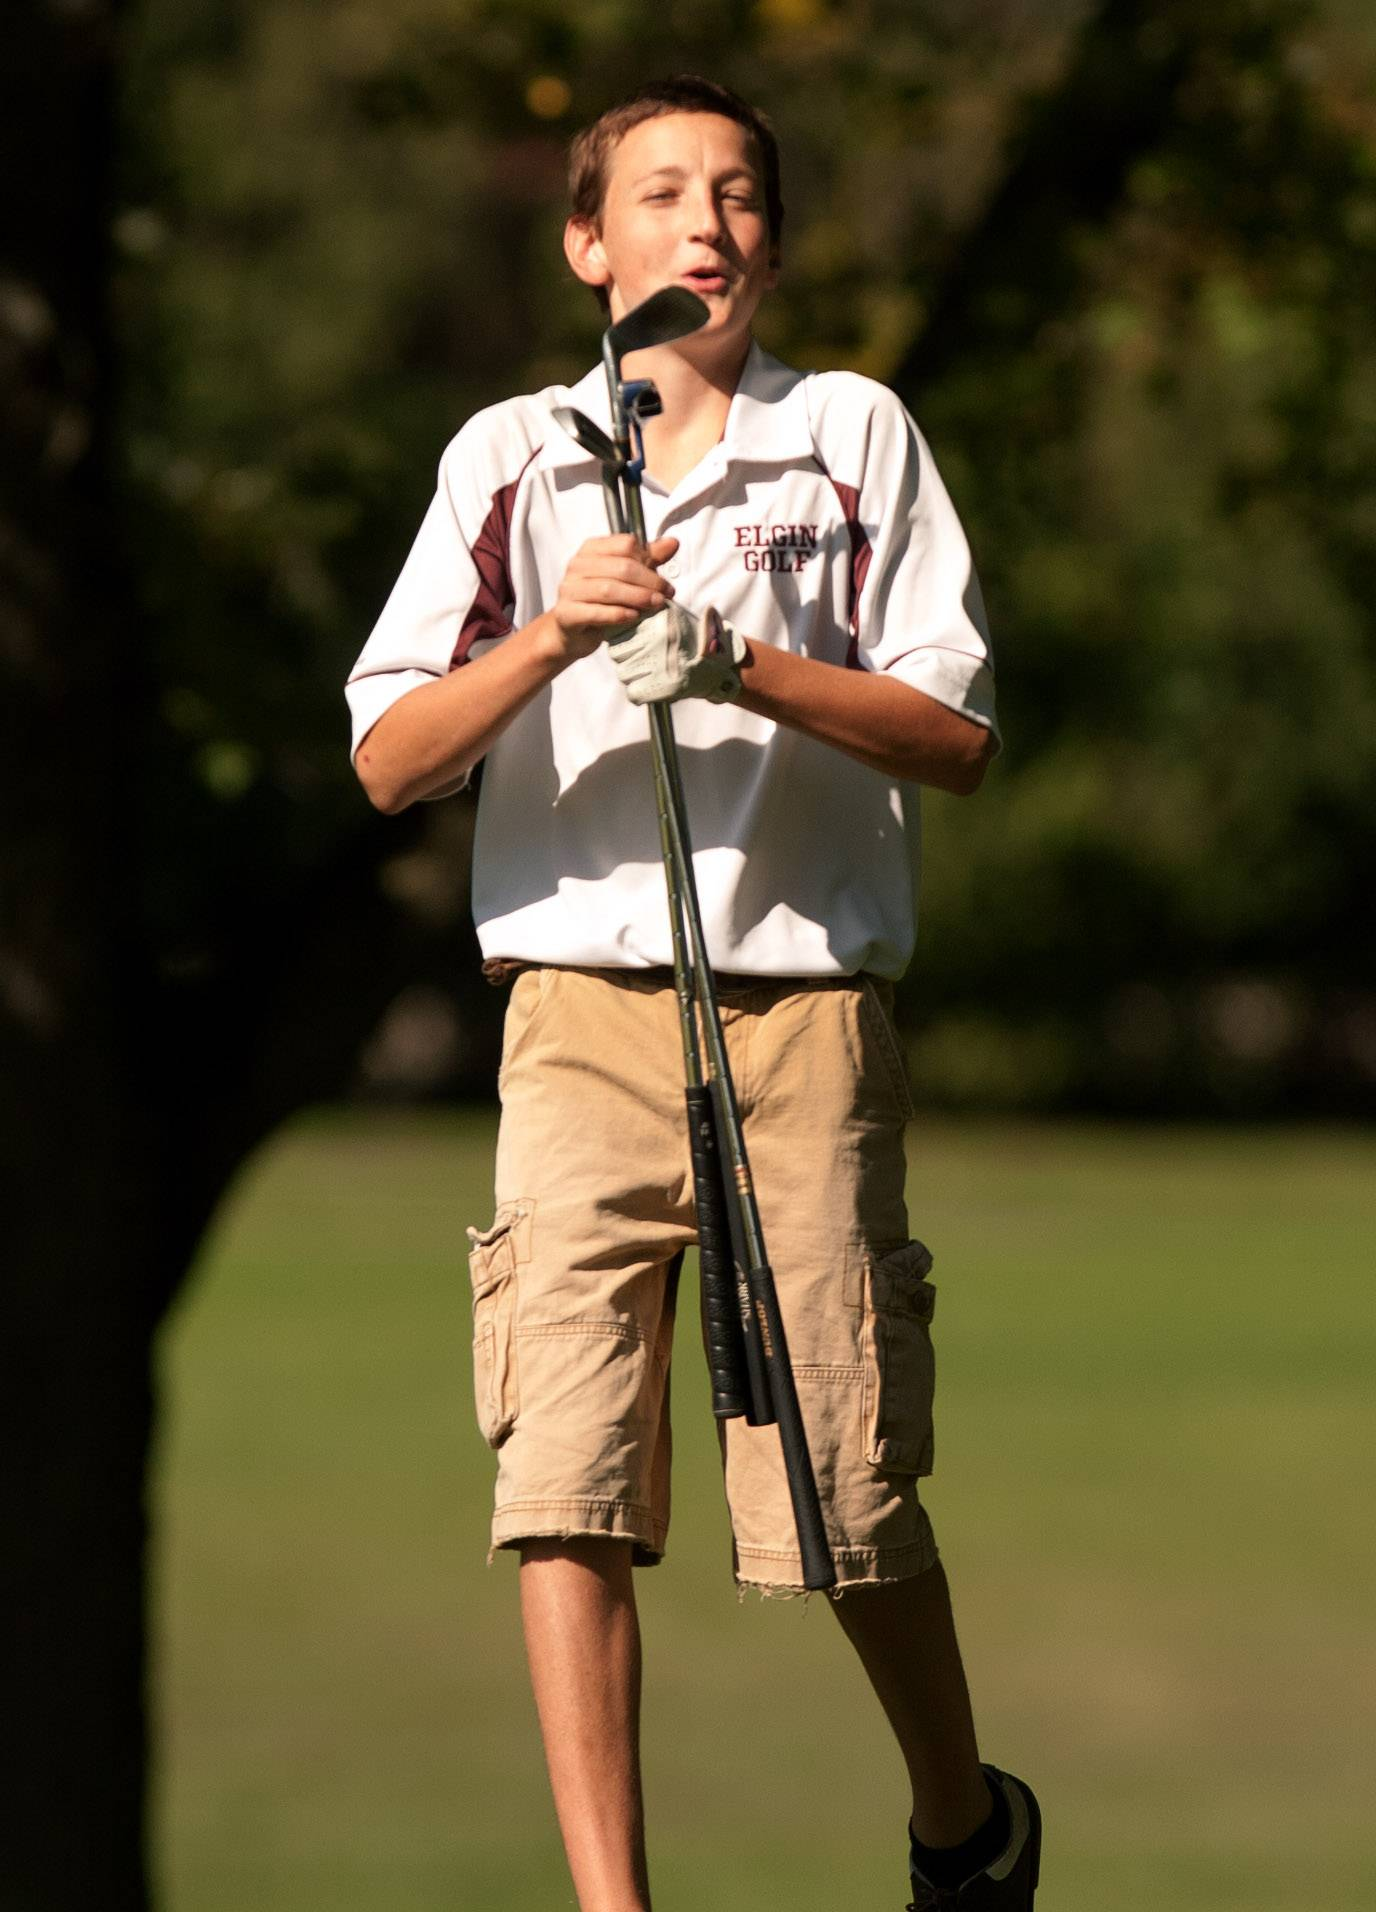 As he gathers his clubs, Elgin's Josh Hegel reacts to sinking a 35-foot putt during the Upstate Eight Conference boys golf tournament at St. Andrews Country Club last season.